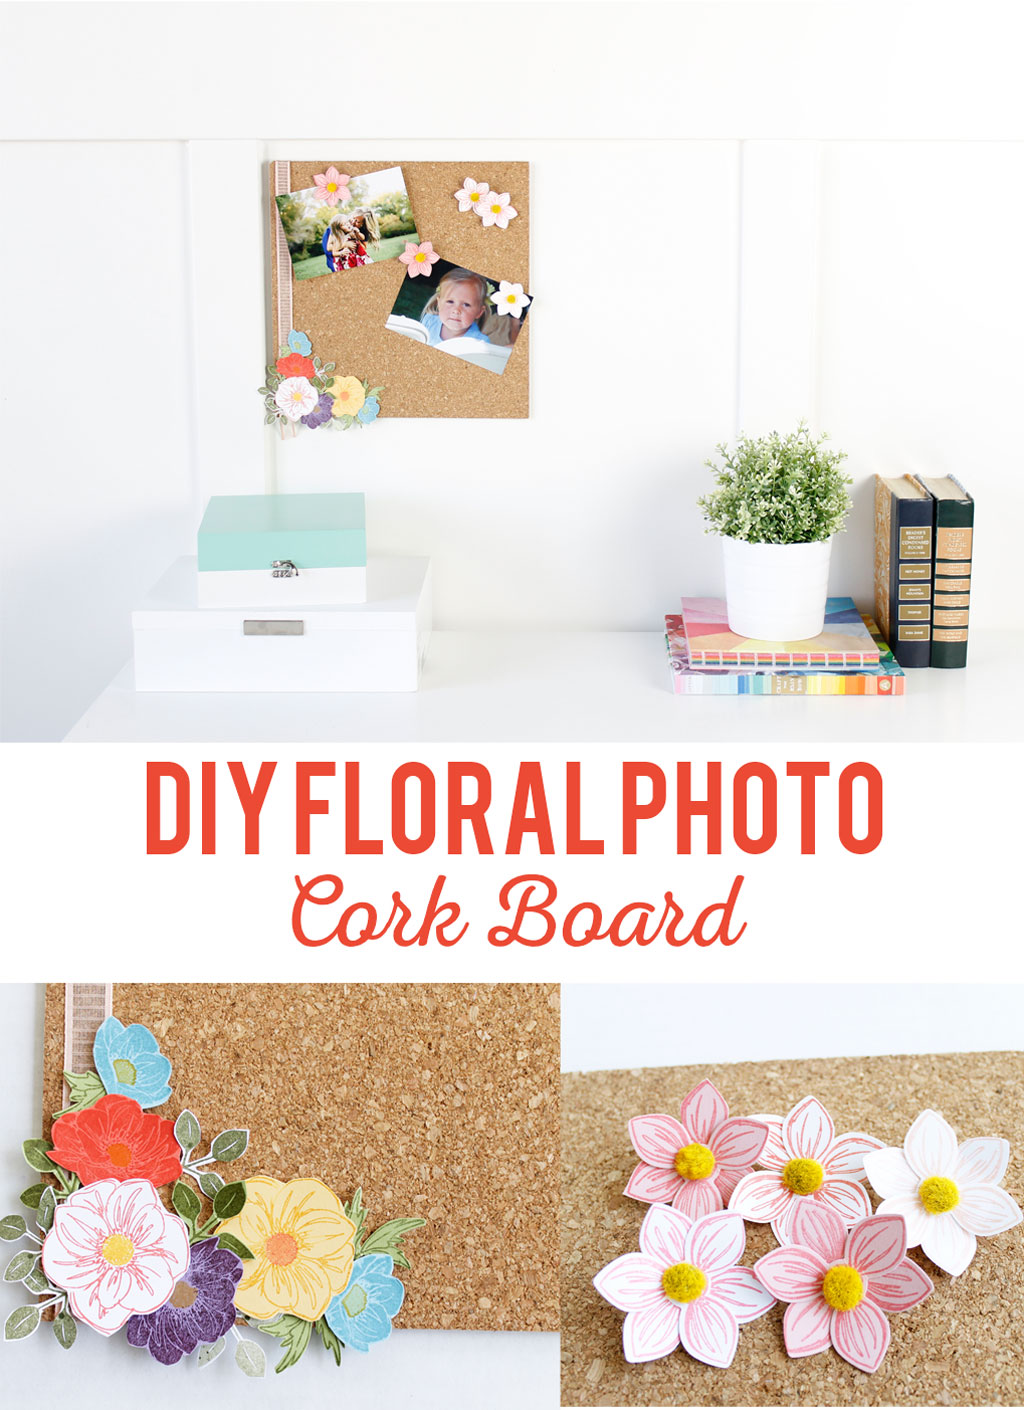 Cork board with flowers desk set up